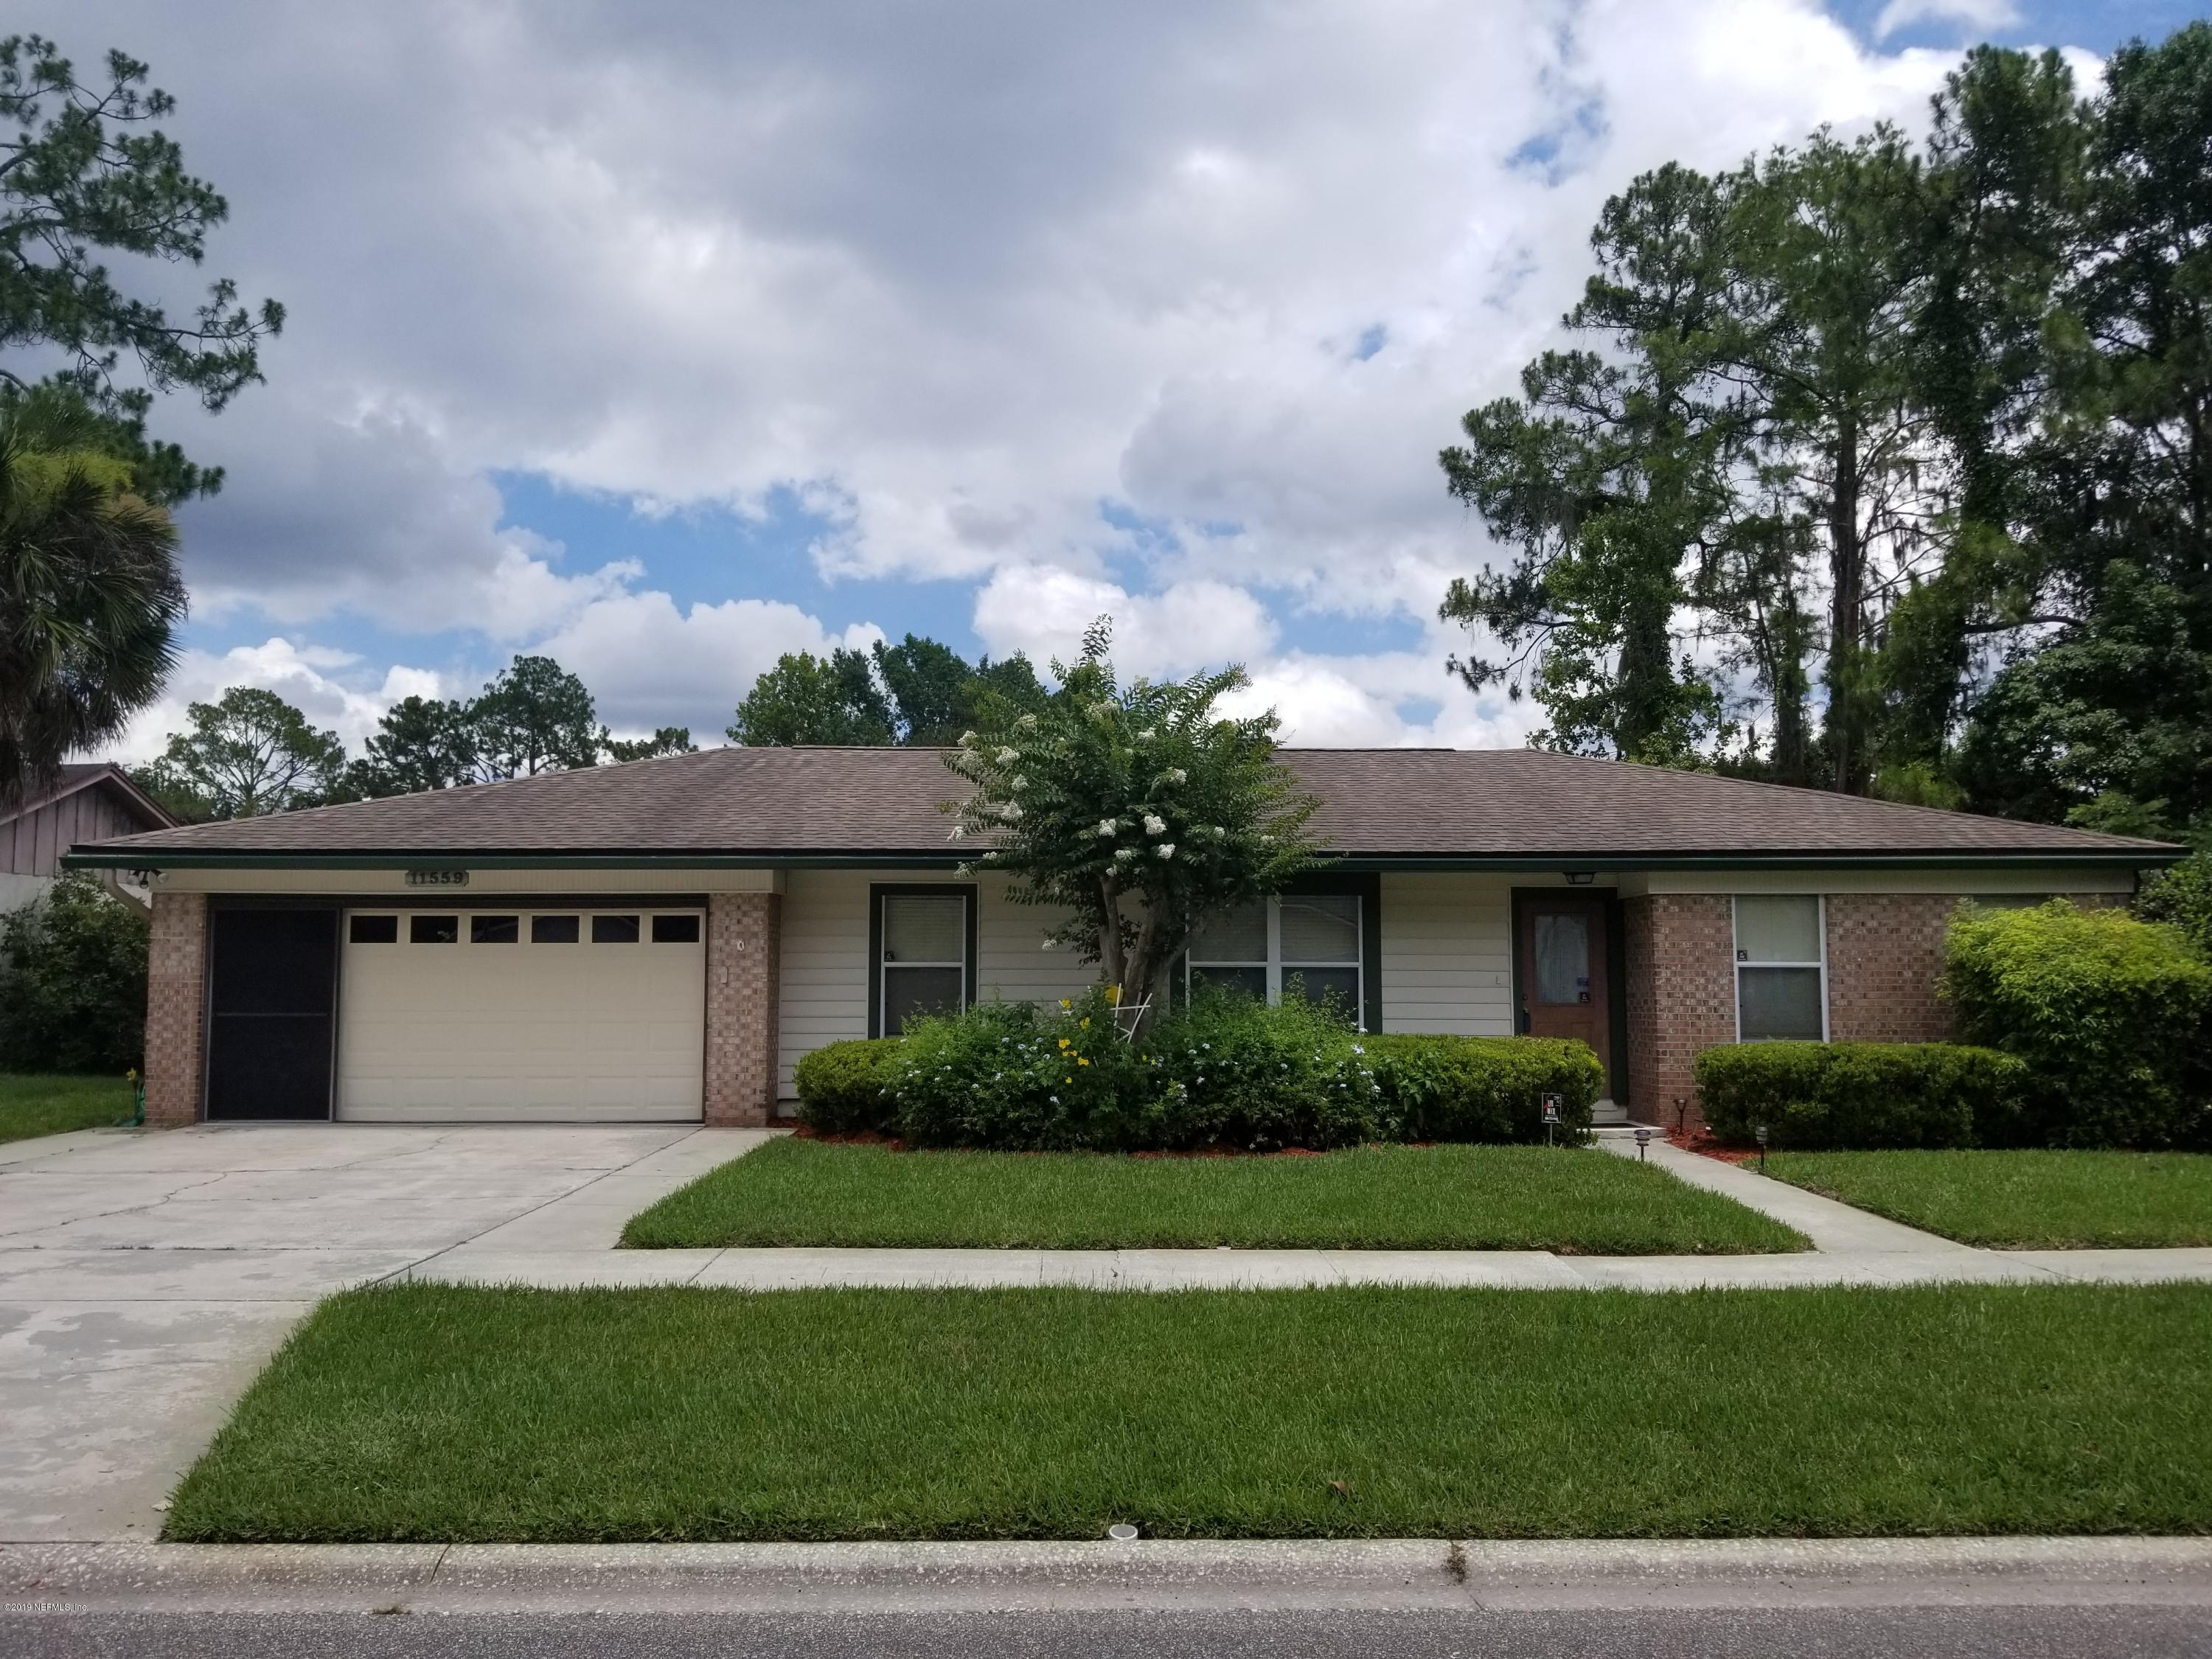 11559 RIDE, JACKSONVILLE, FLORIDA 32223, 3 Bedrooms Bedrooms, ,2 BathroomsBathrooms,Residential - single family,For sale,RIDE,1000924